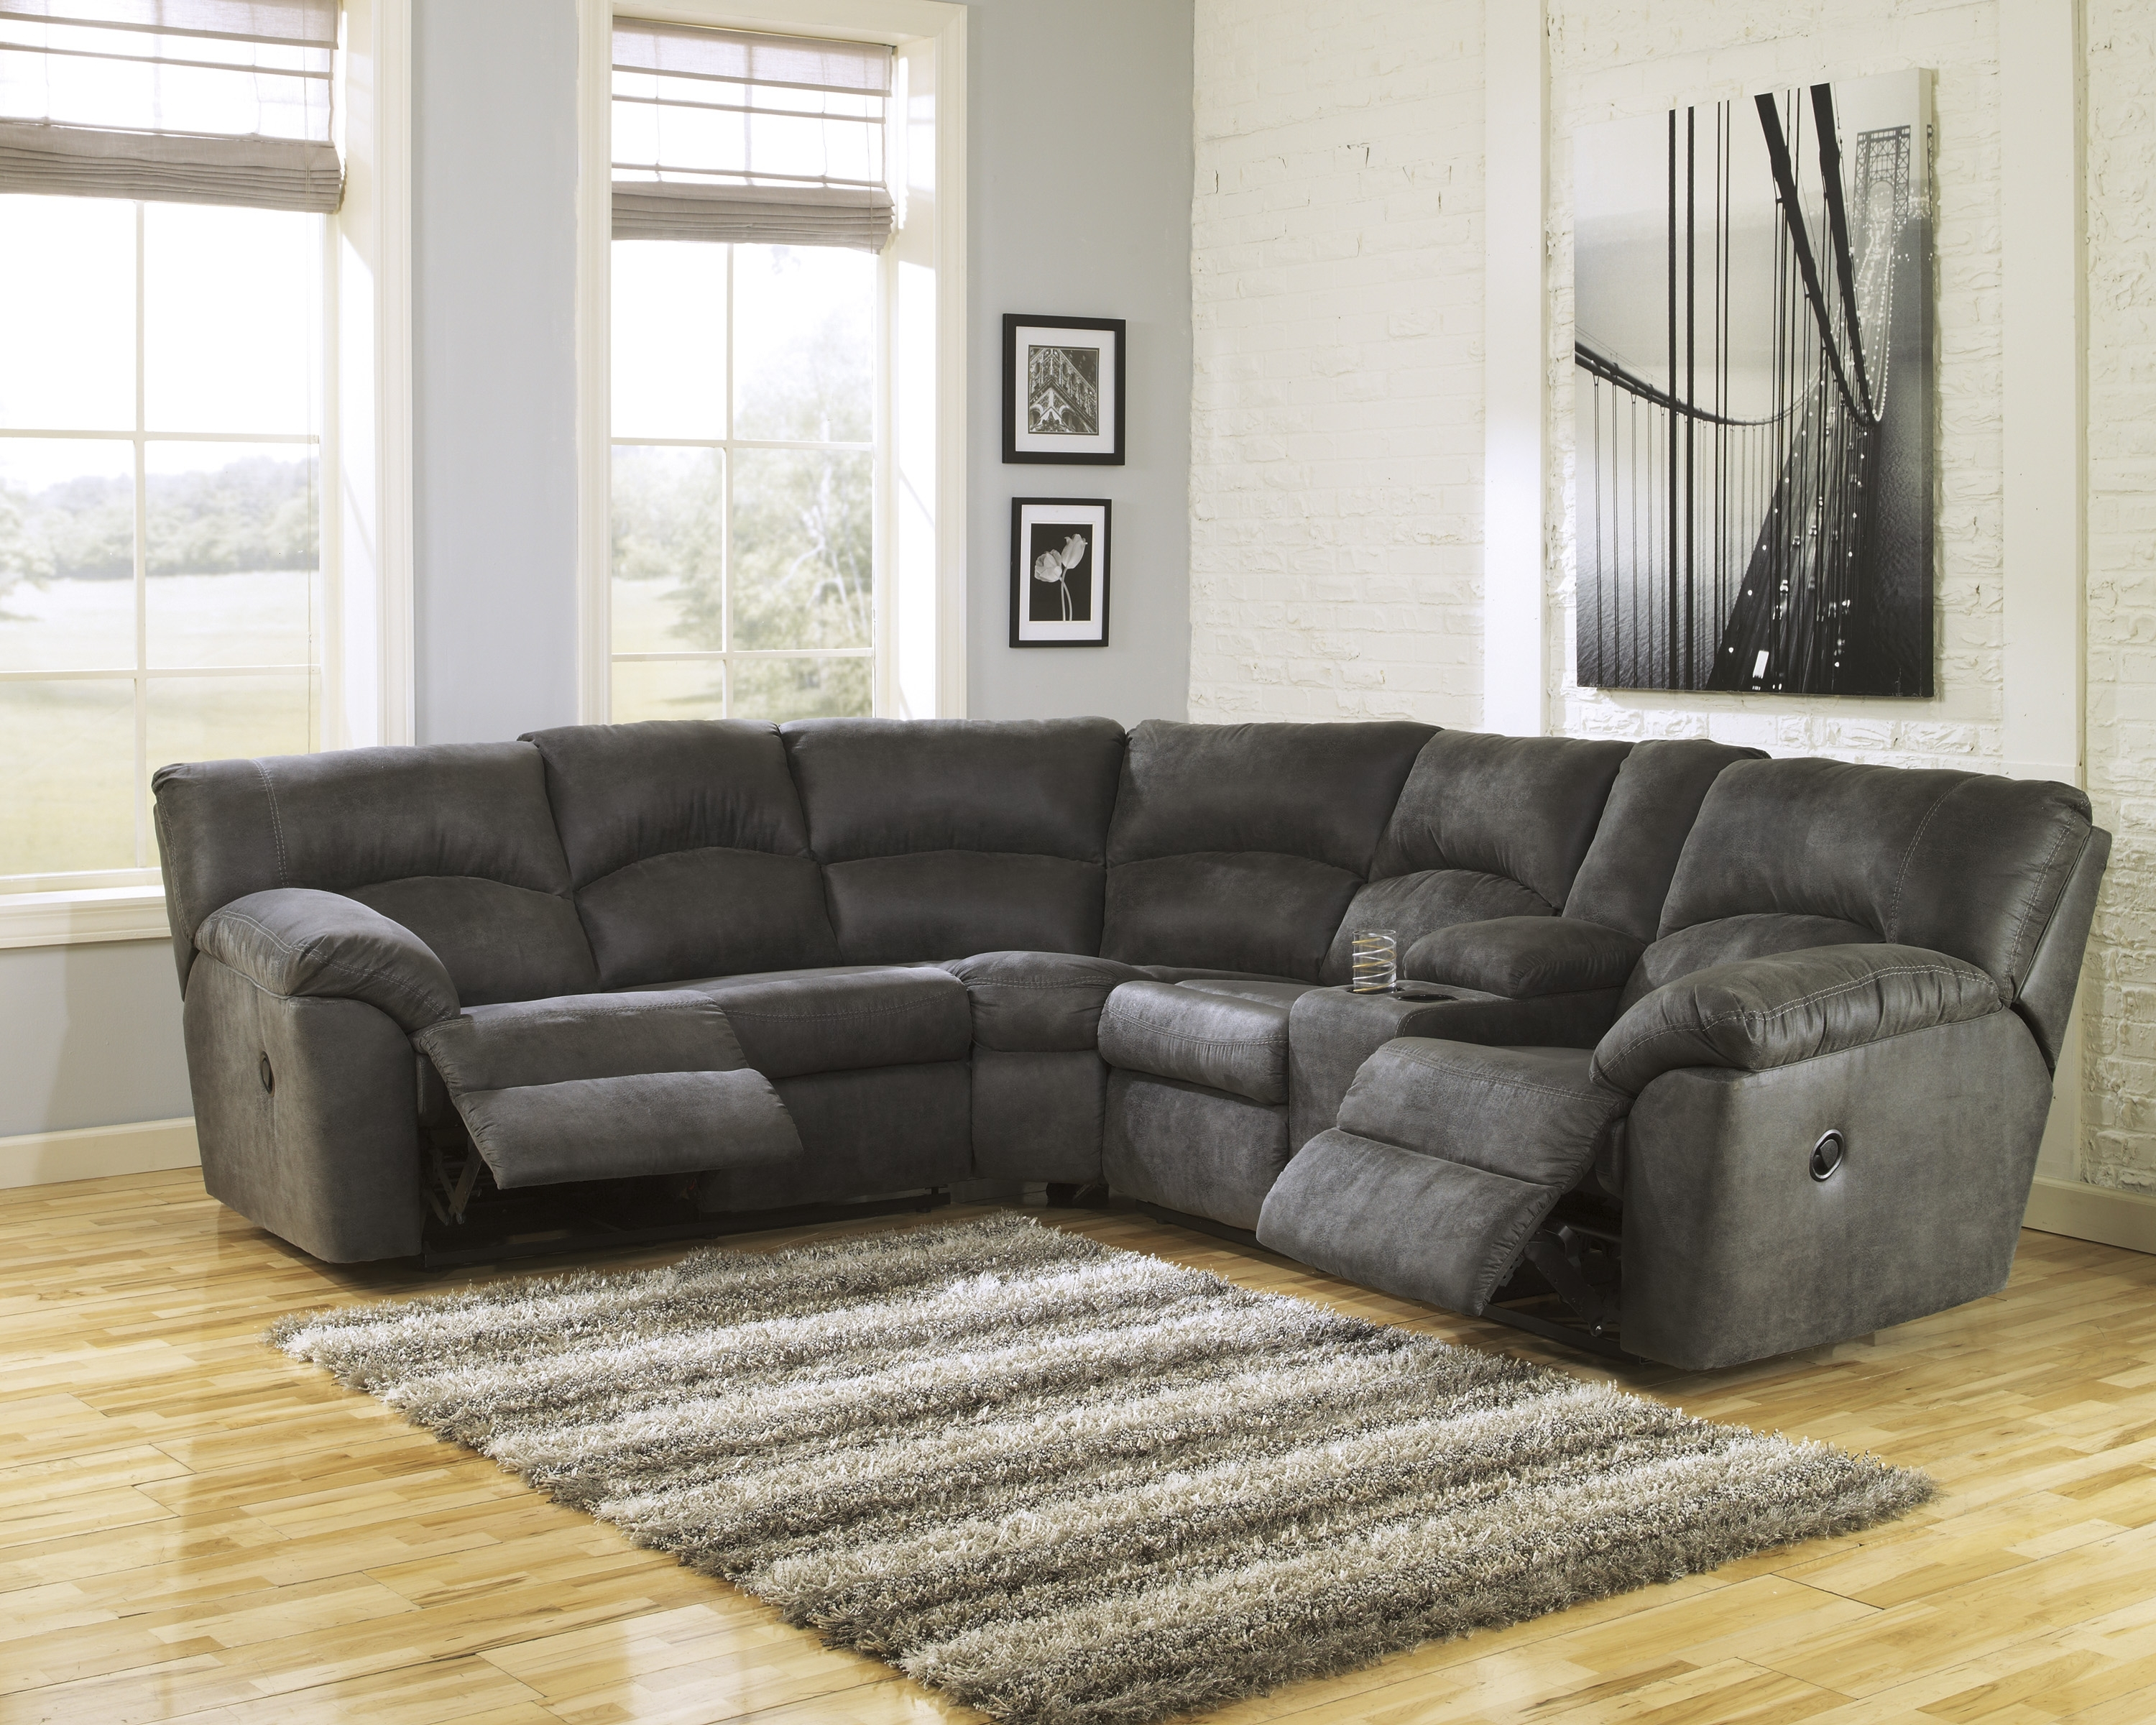 Sectionals Living Room   Furniture   Big Sandy Superstores Inside Denali Charcoal Grey 6 Piece Reclining Sectionals With 2 Power Headrests (Image 23 of 25)